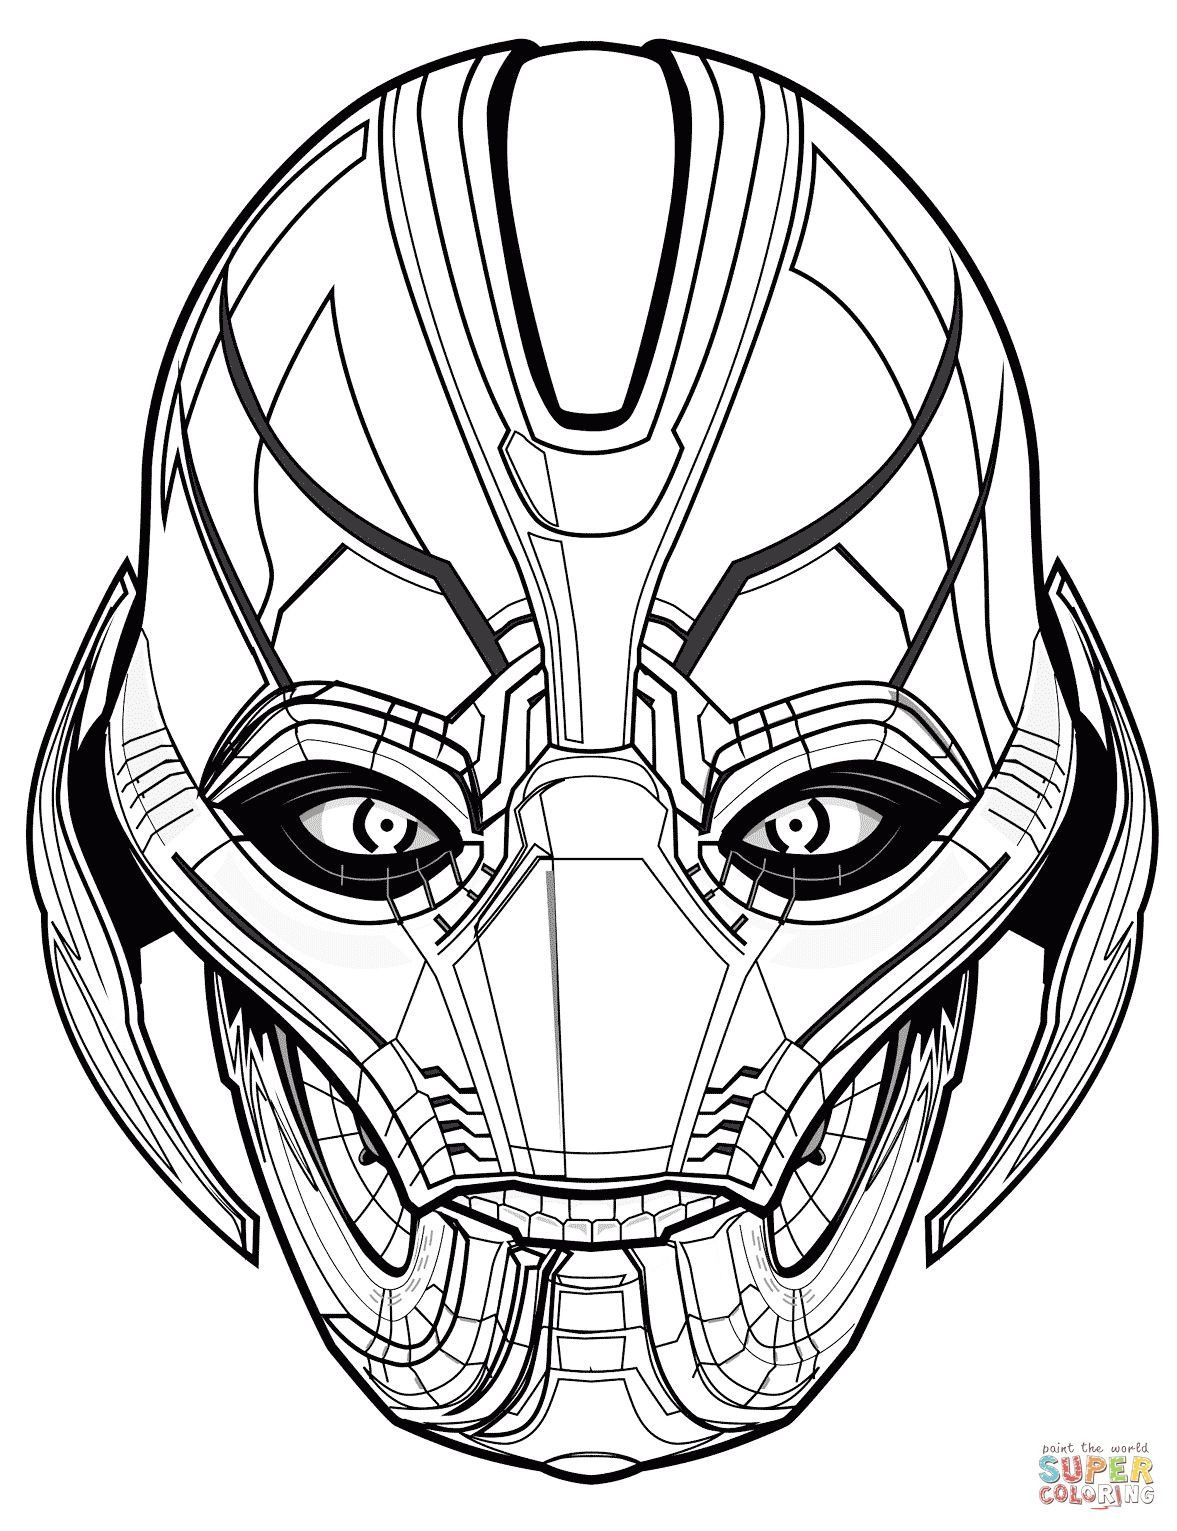 Awesome Hulkbuster Coloring Page Avengers Coloring Avengers Coloring Pages Marvel Coloring